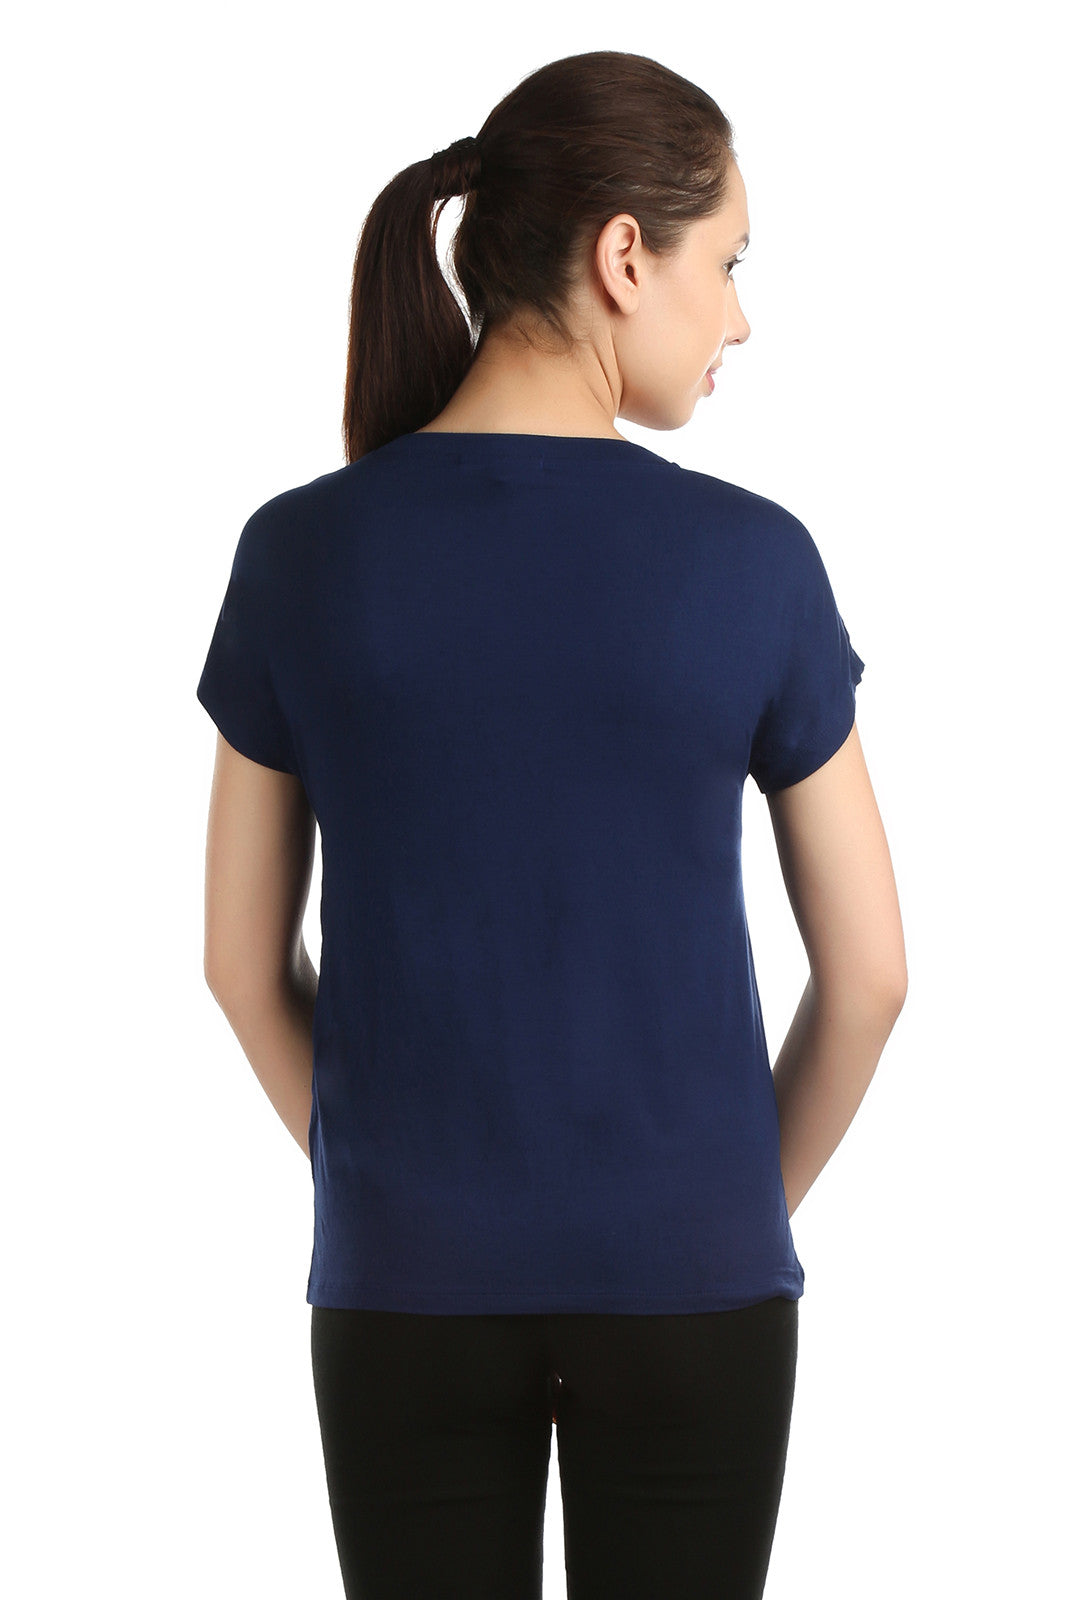 Lancet Blue Square Cut Tee - ETHER  - 4